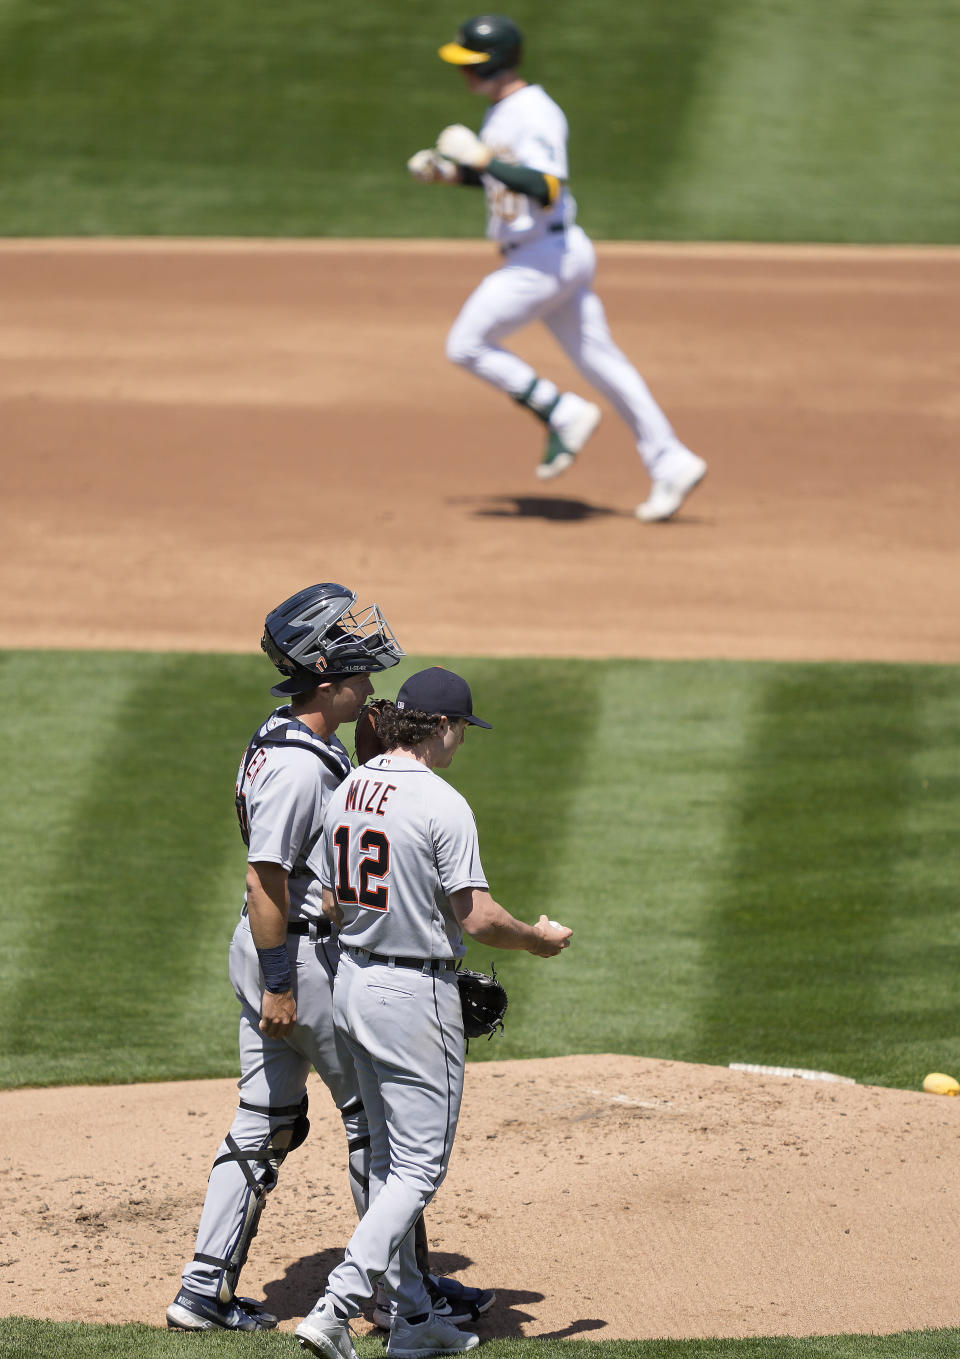 Detroit Tigers pitcher Casey Mize (12) and catcher Grayson Greiner (17) talk on the mound as Oakland Athletics' Mark Canha, top, rounds the bases after hitting a solo home run during the second inning of a baseball game on Saturday, April 17, 2021, in Oakland, Calif. (AP Photo/Tony Avelar)